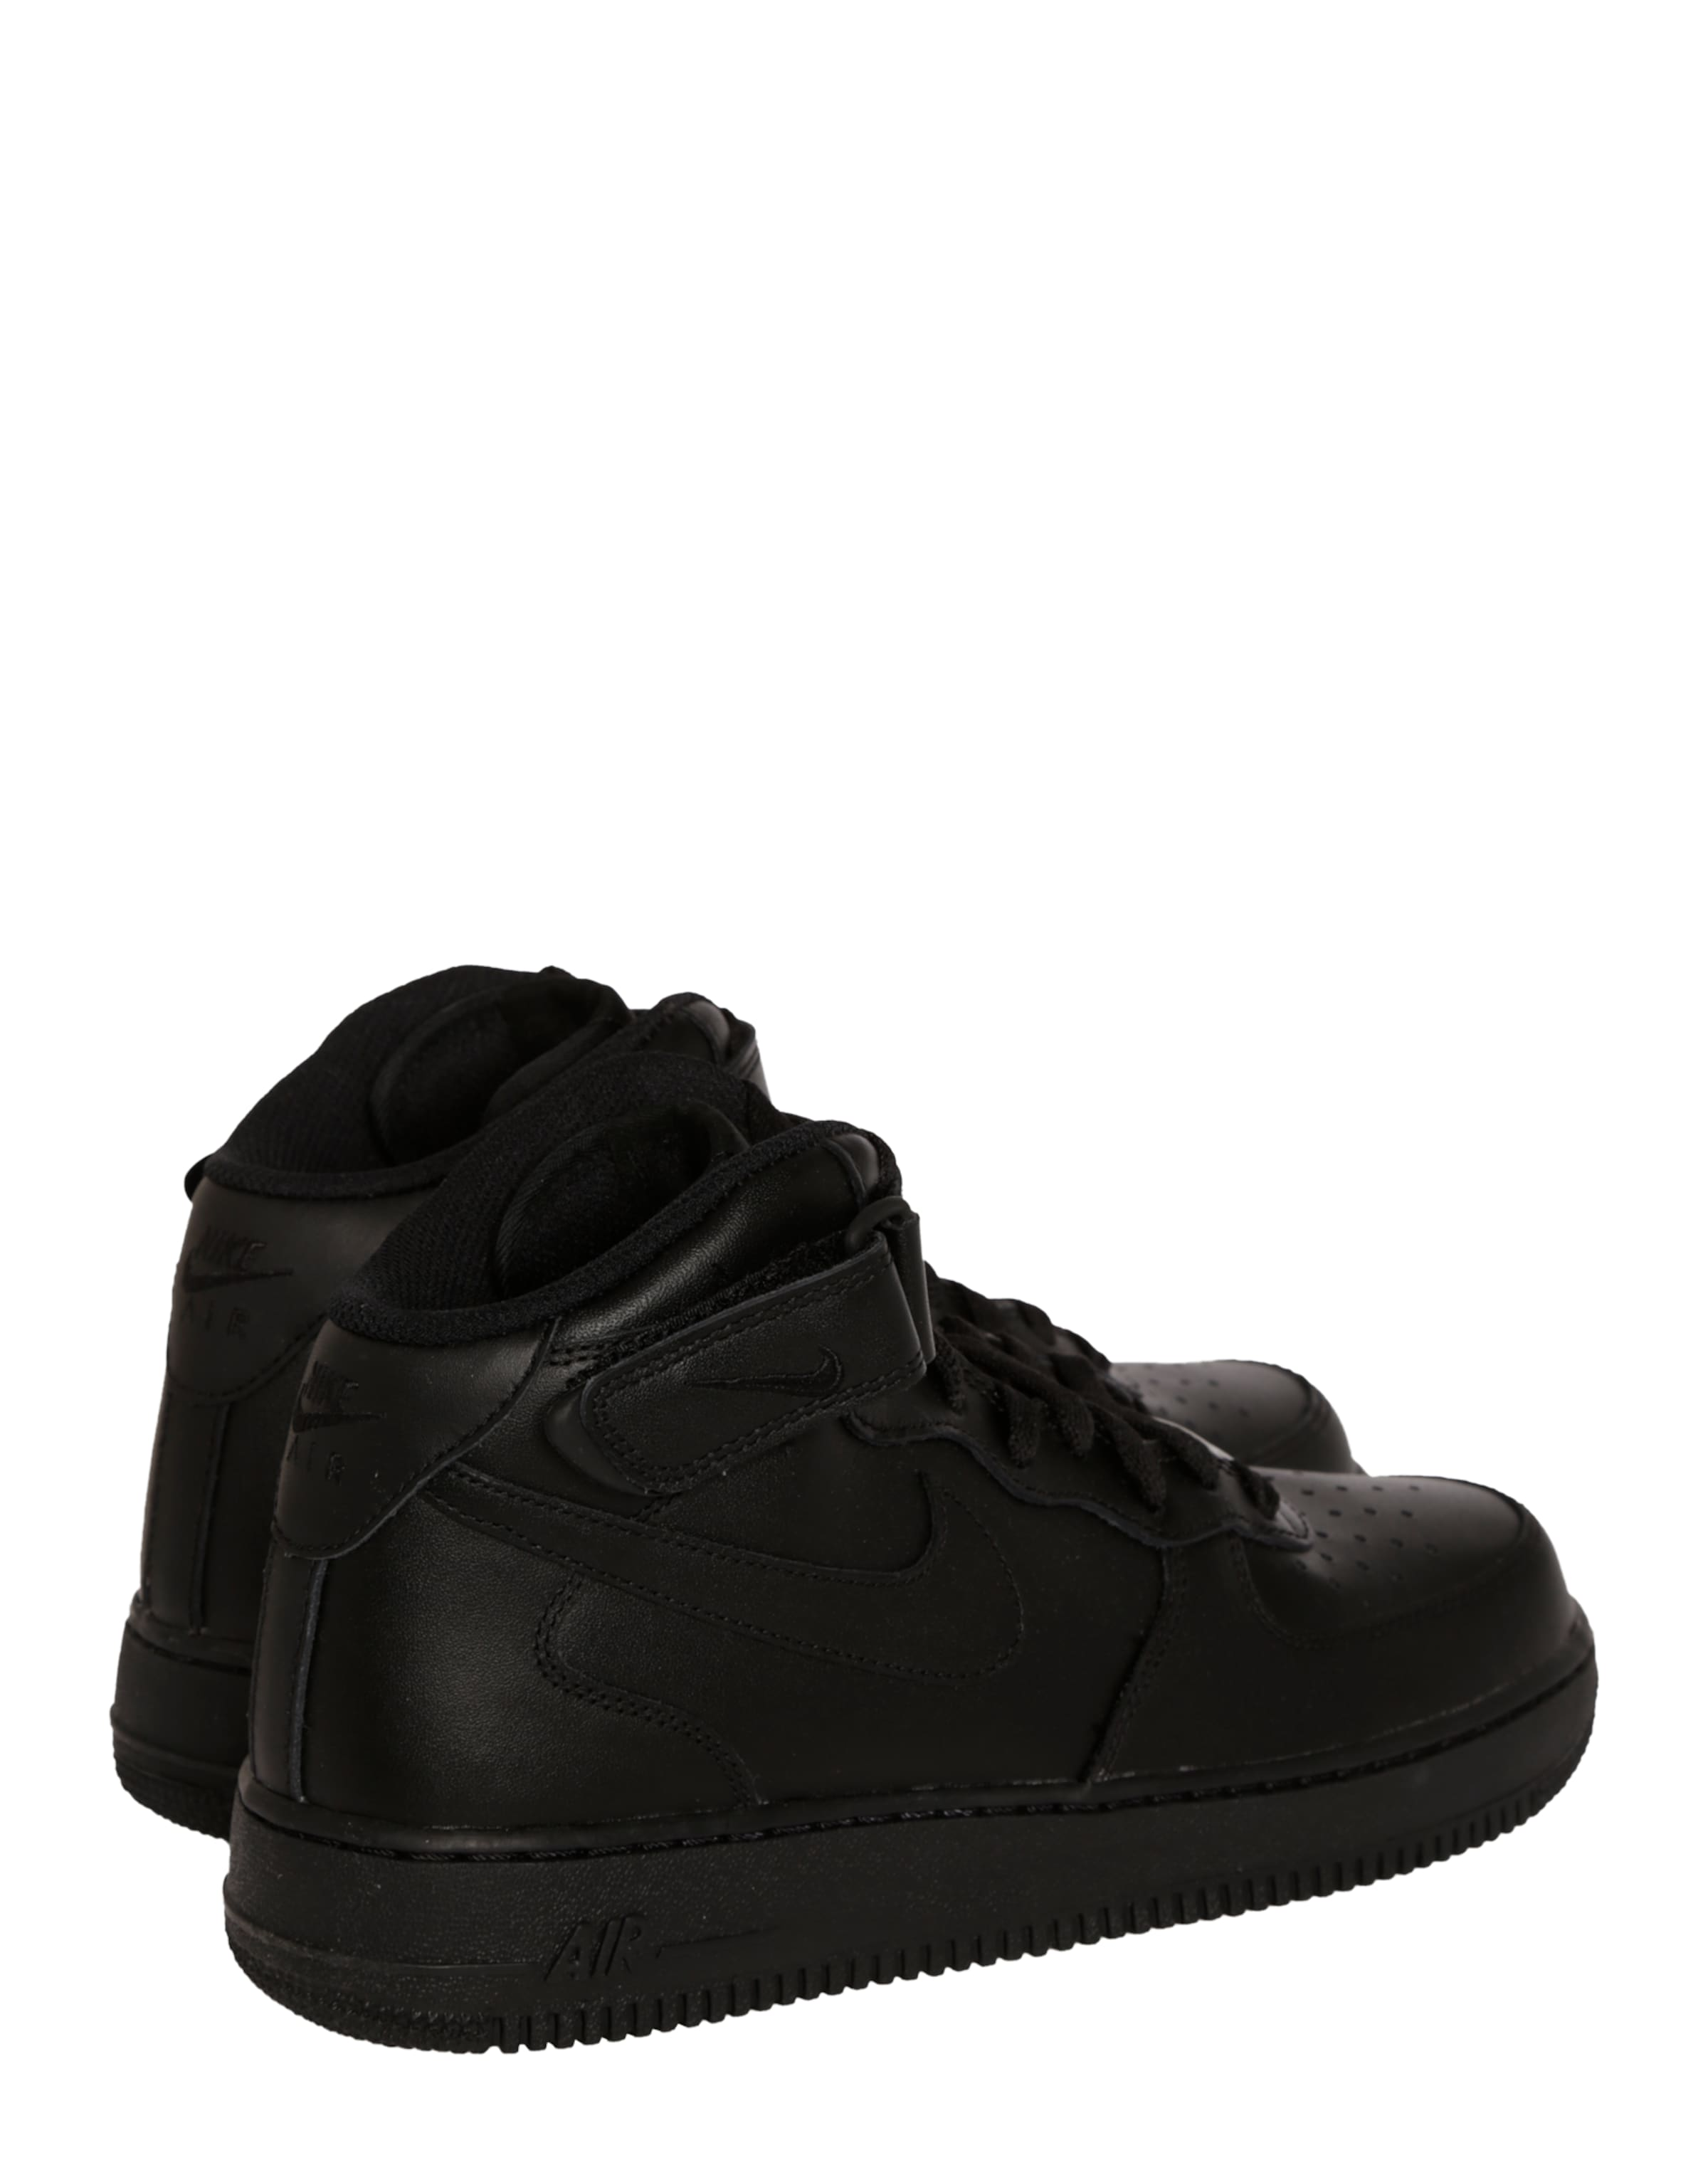 Force Sportswear Sneaker Mid' 'air Nike Schwarz In L4R5jA